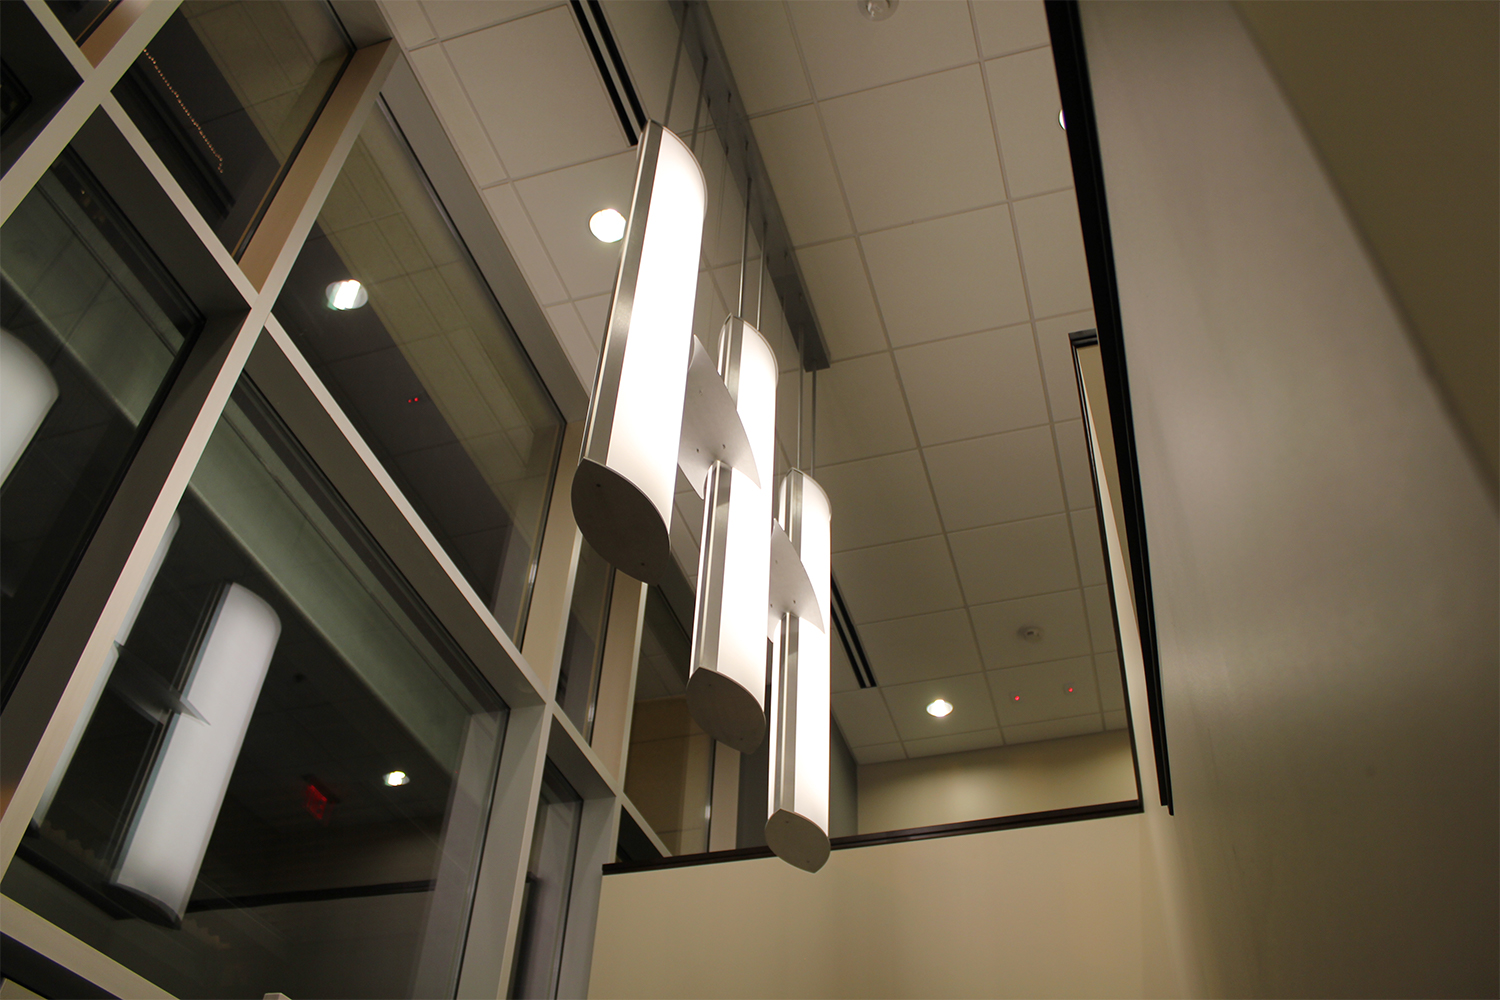 Air Foil pendants hung in a group of three for a stylish hospital lighting design.